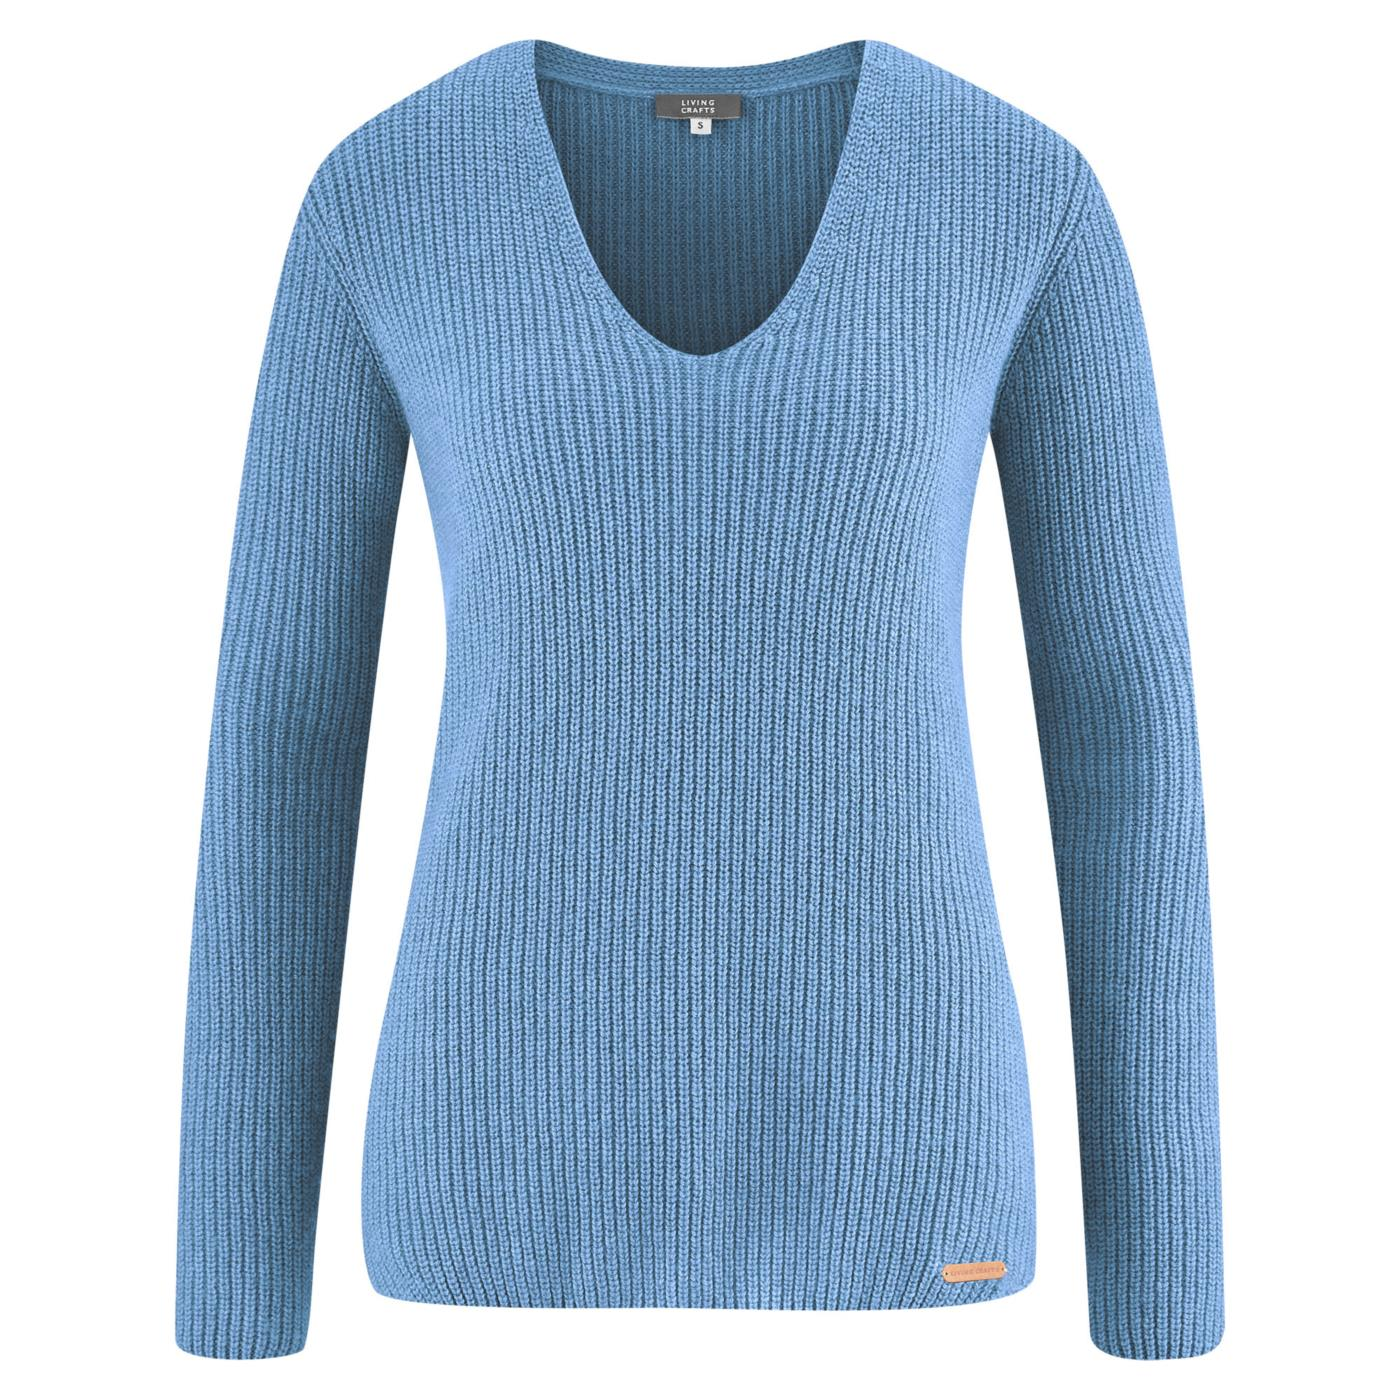 Hortense Sweater